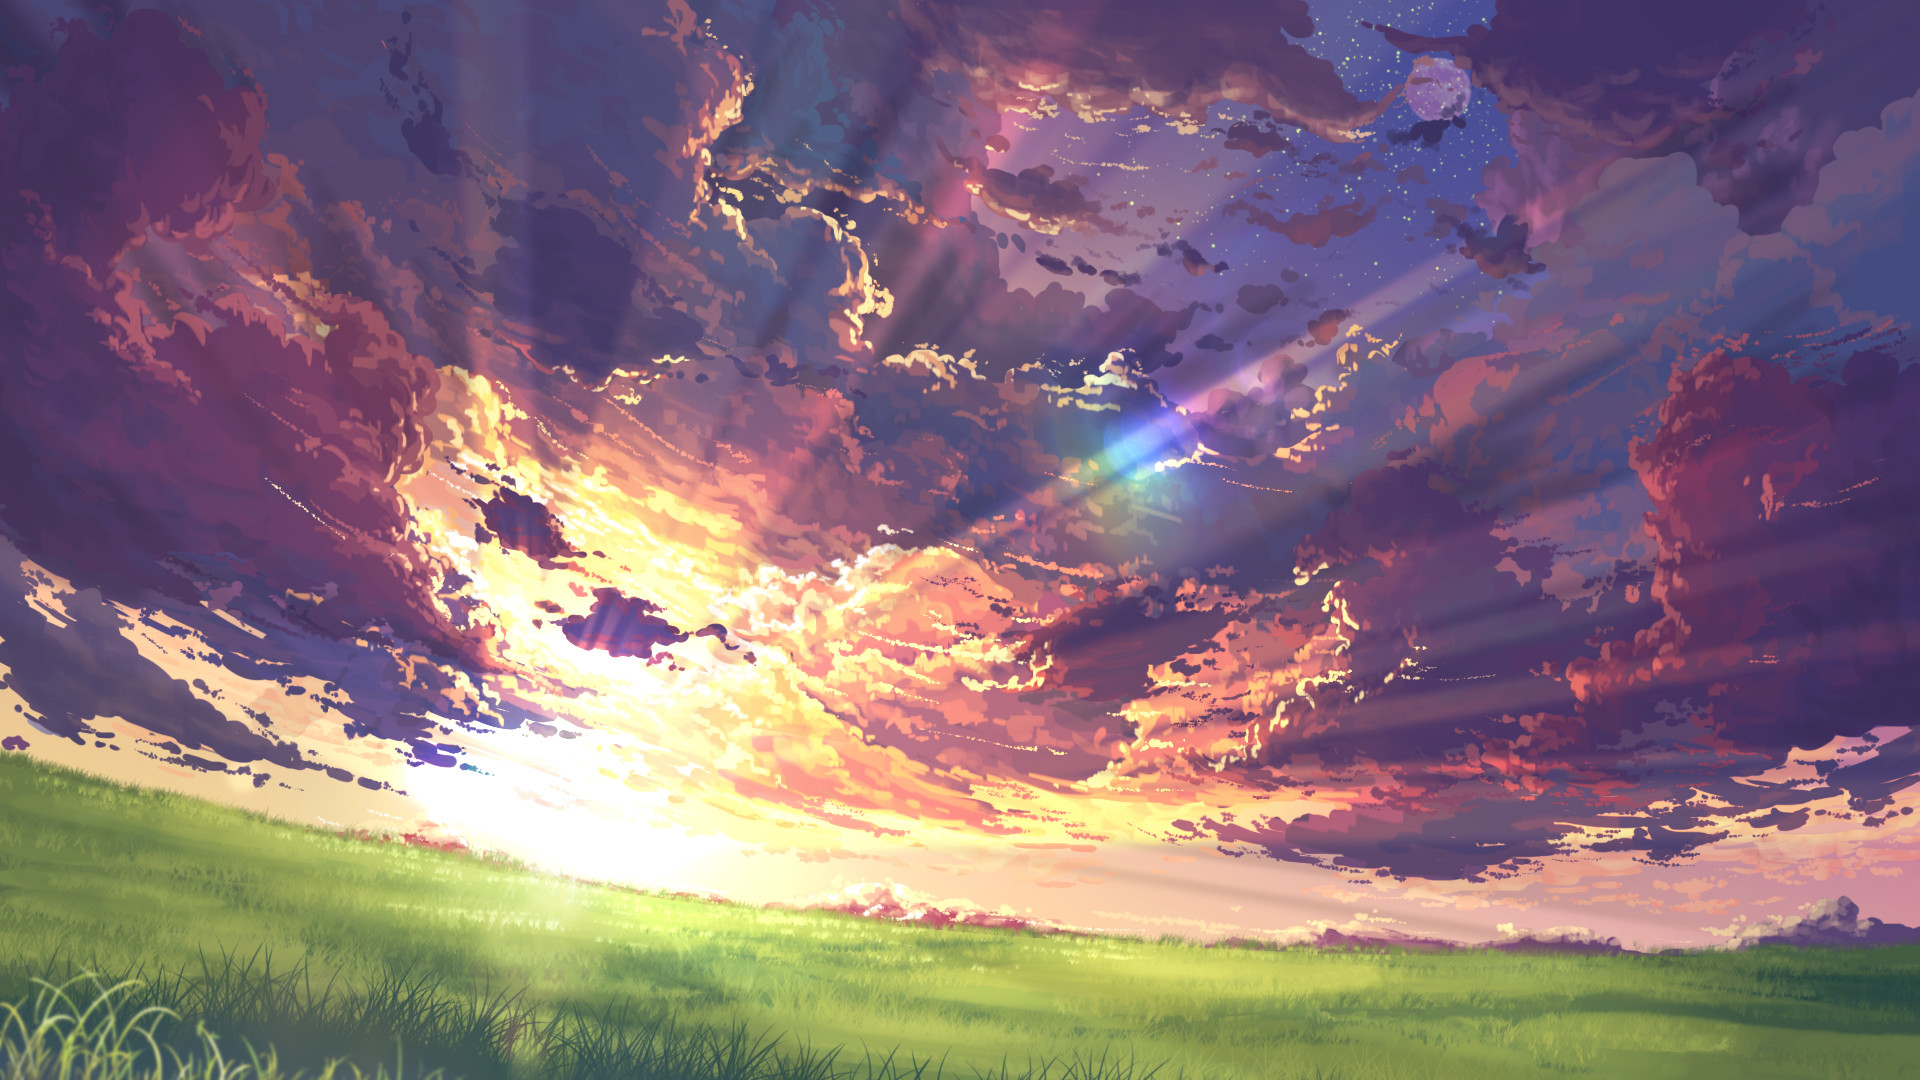 Anime Inspired Hd Fantasy Wallpapers For Your Collection: Beautiful Anime Wallpaper (68+ Images